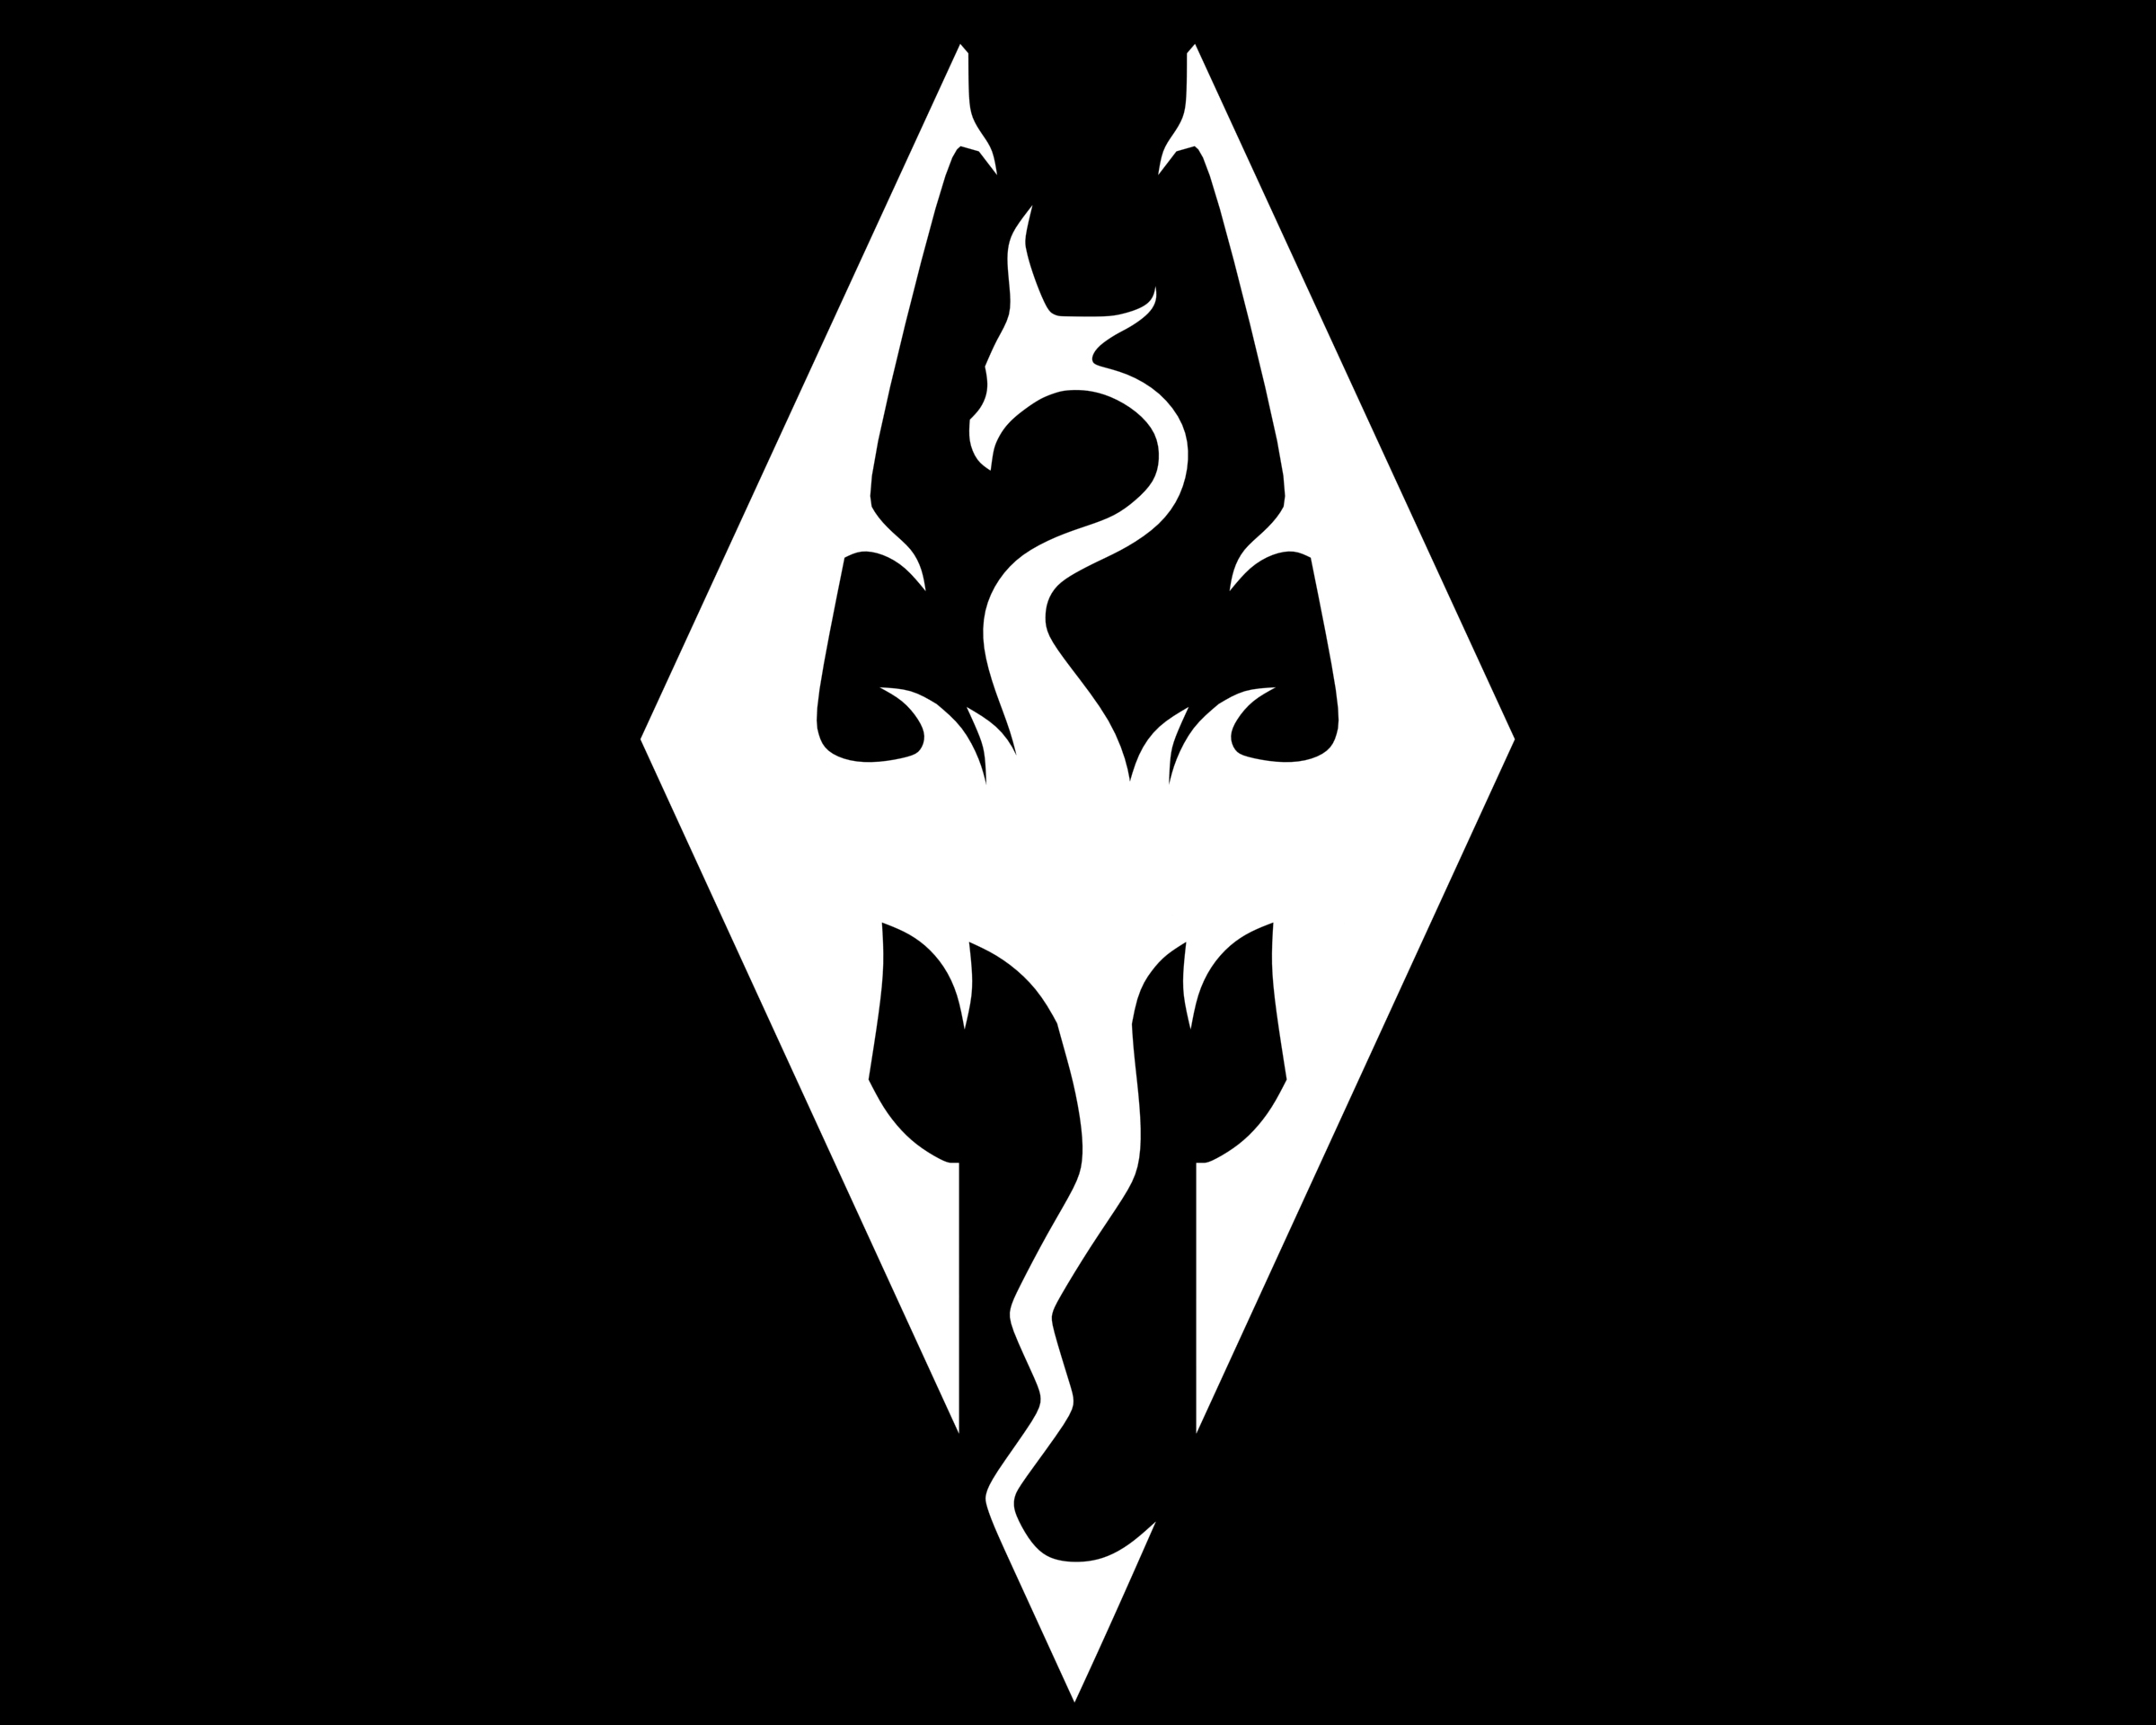 Meaning Skyrim logo and symbol | history and evolution